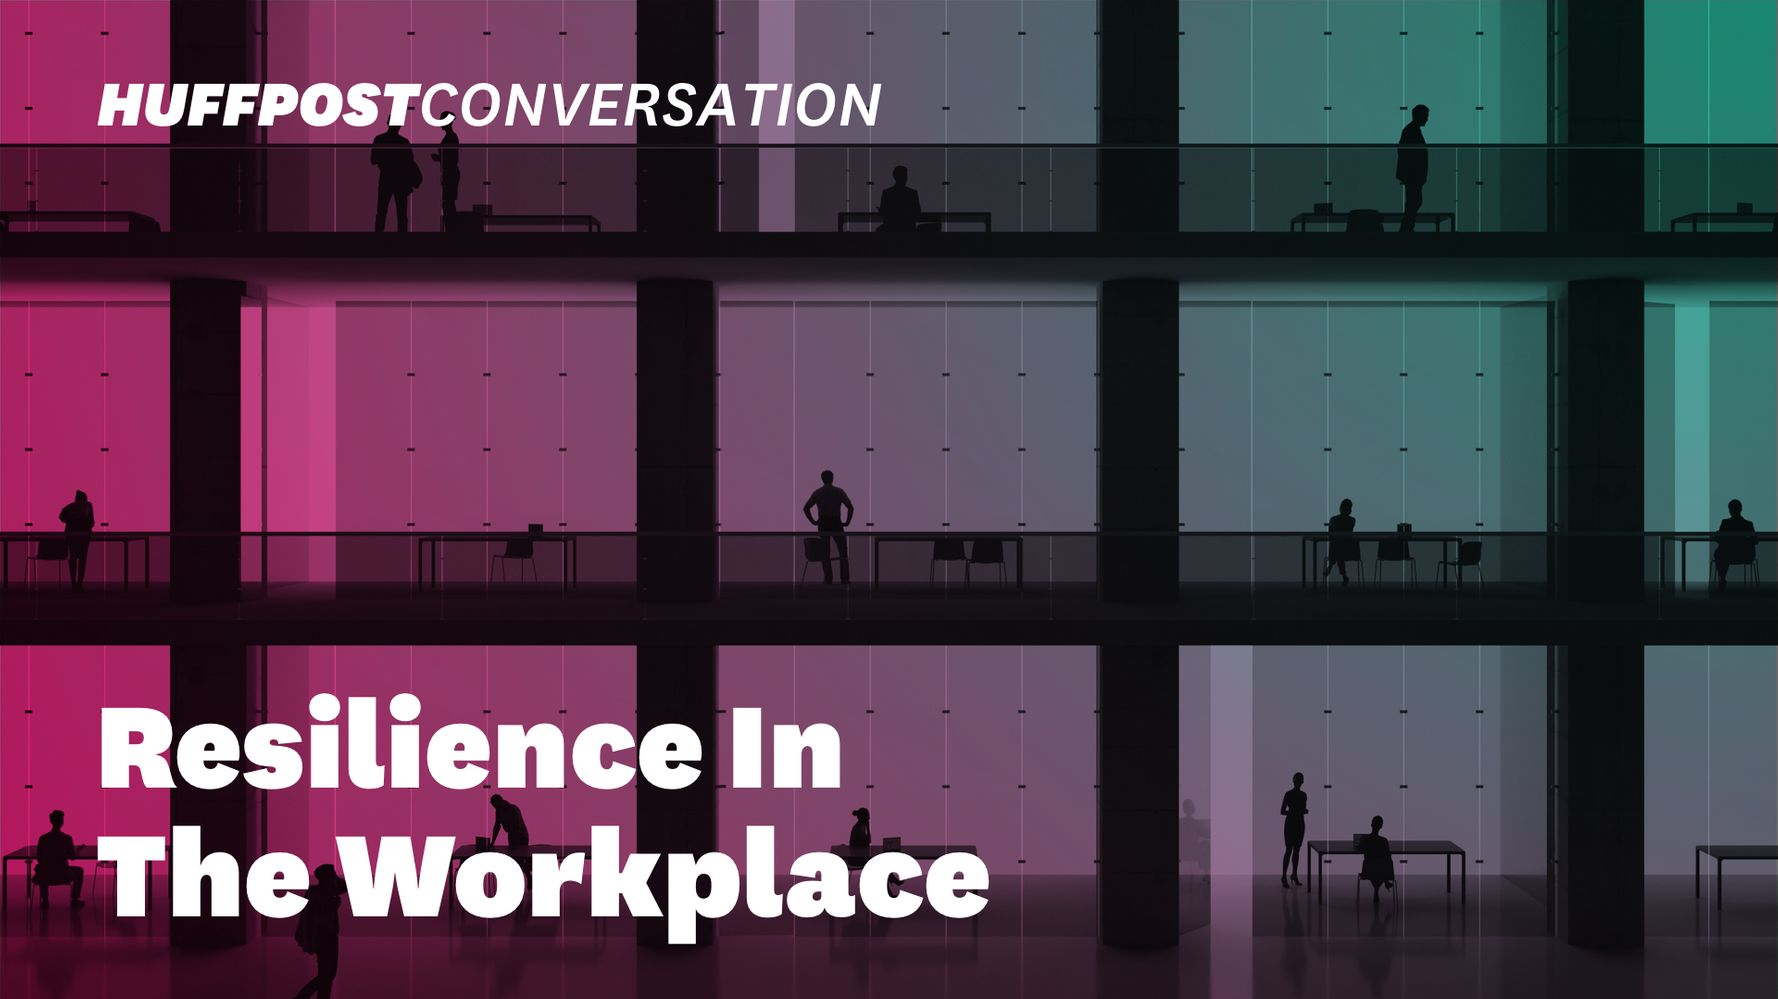 HuffPost Event: Building Resilience In The Workplace During COVID-19